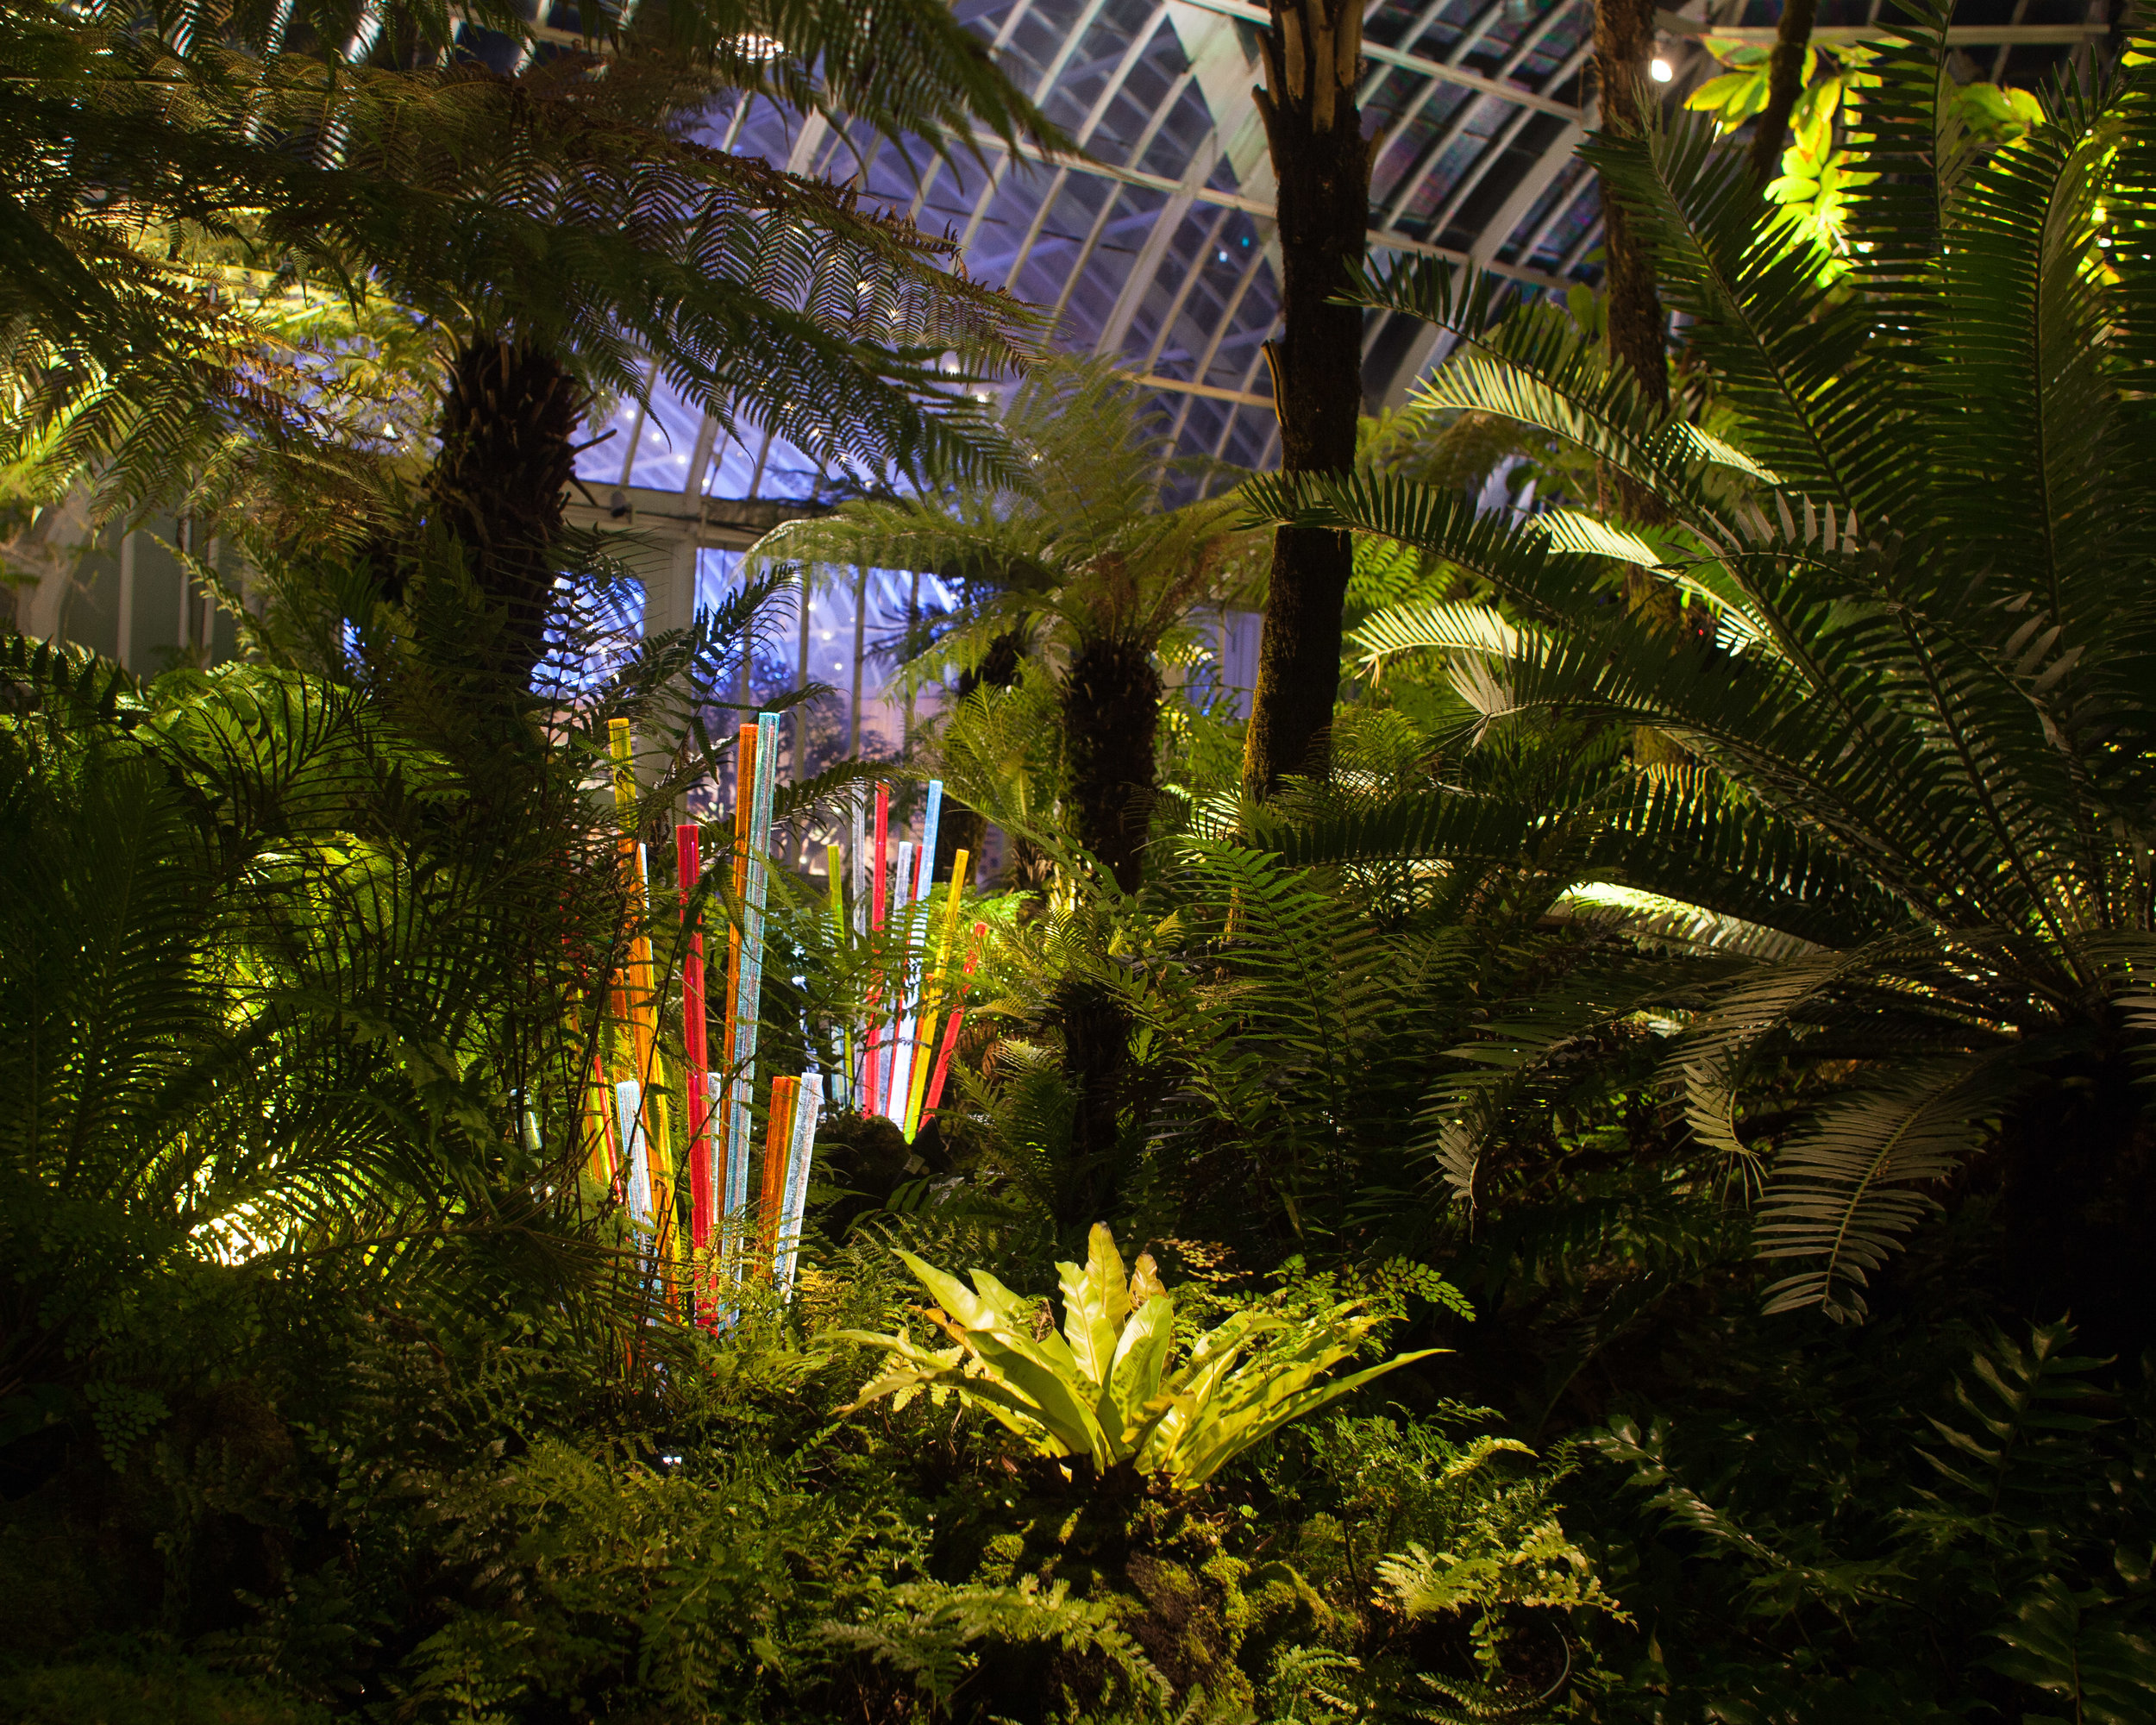 Phipps' light clusters are embedded throughout the dense Fern Room.